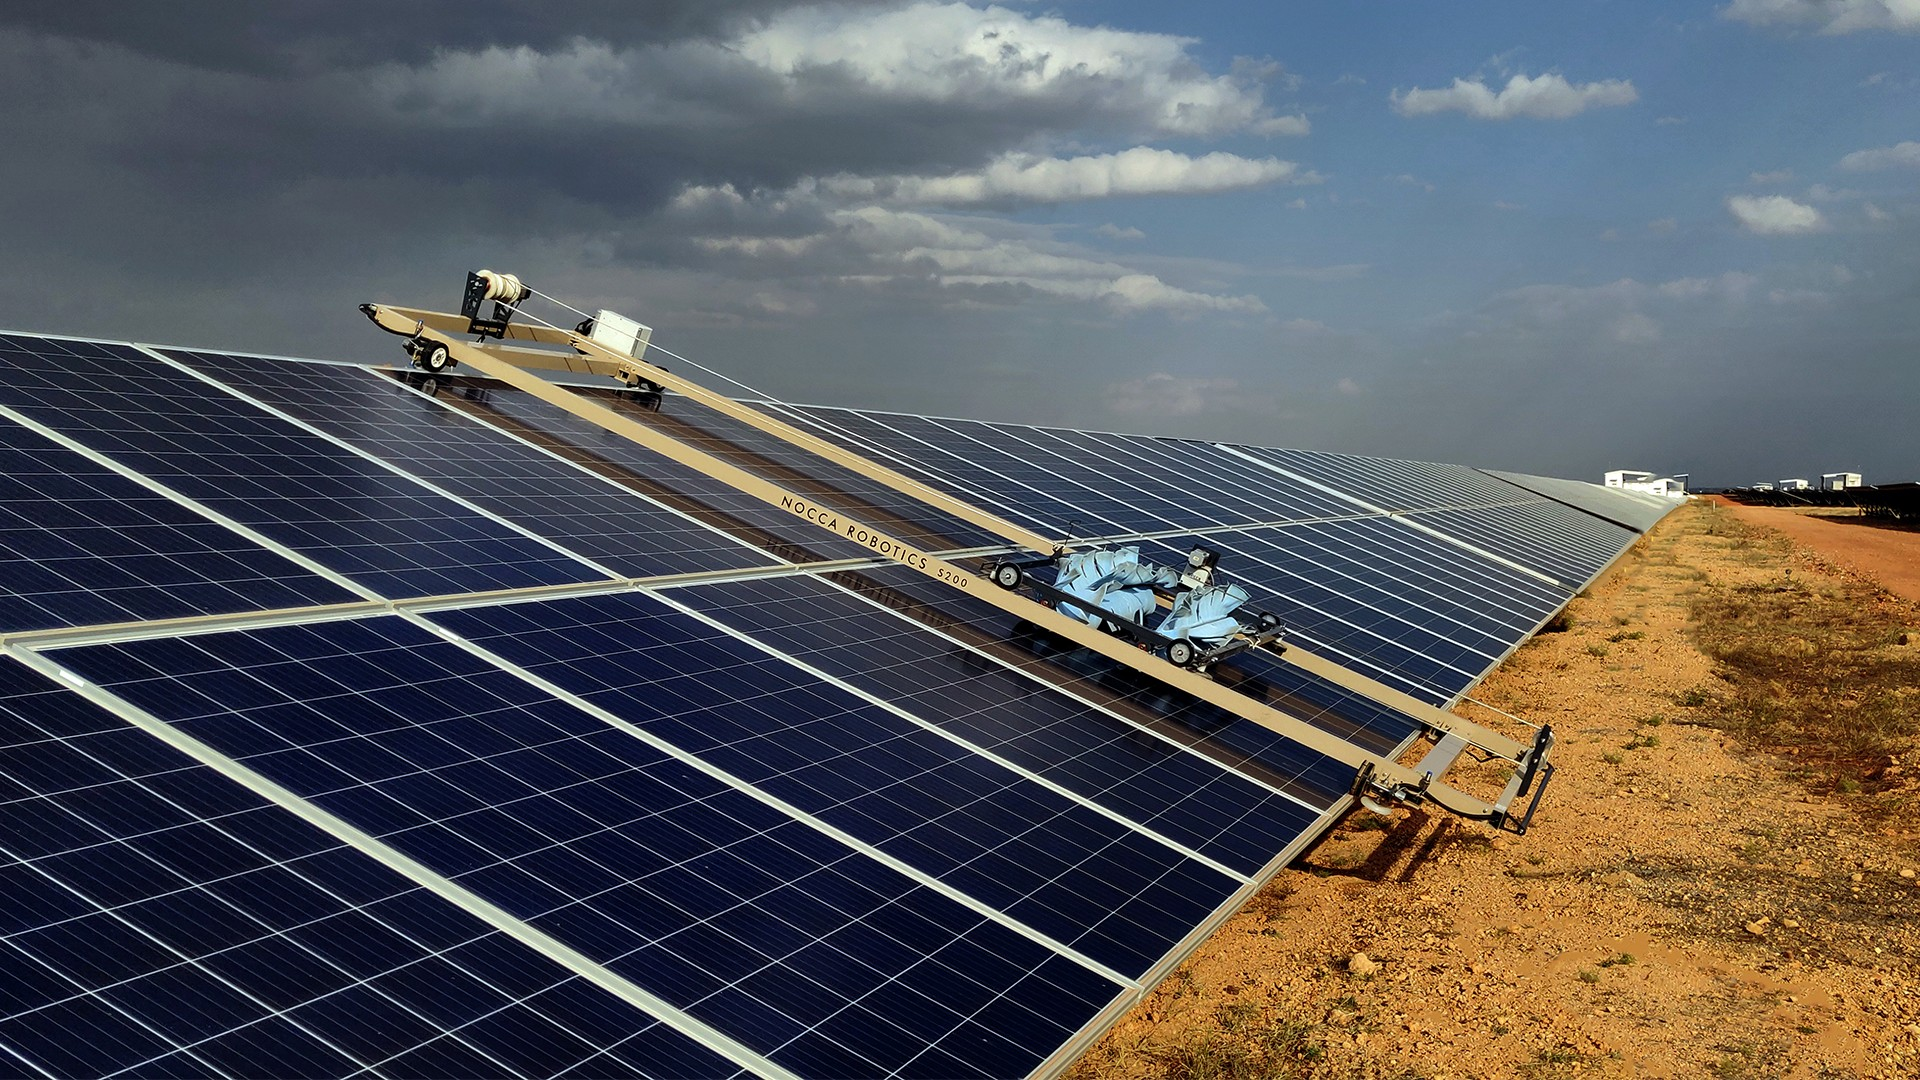 Report: Solar Panel Cleaning Market Worth $1 Bn by 2026